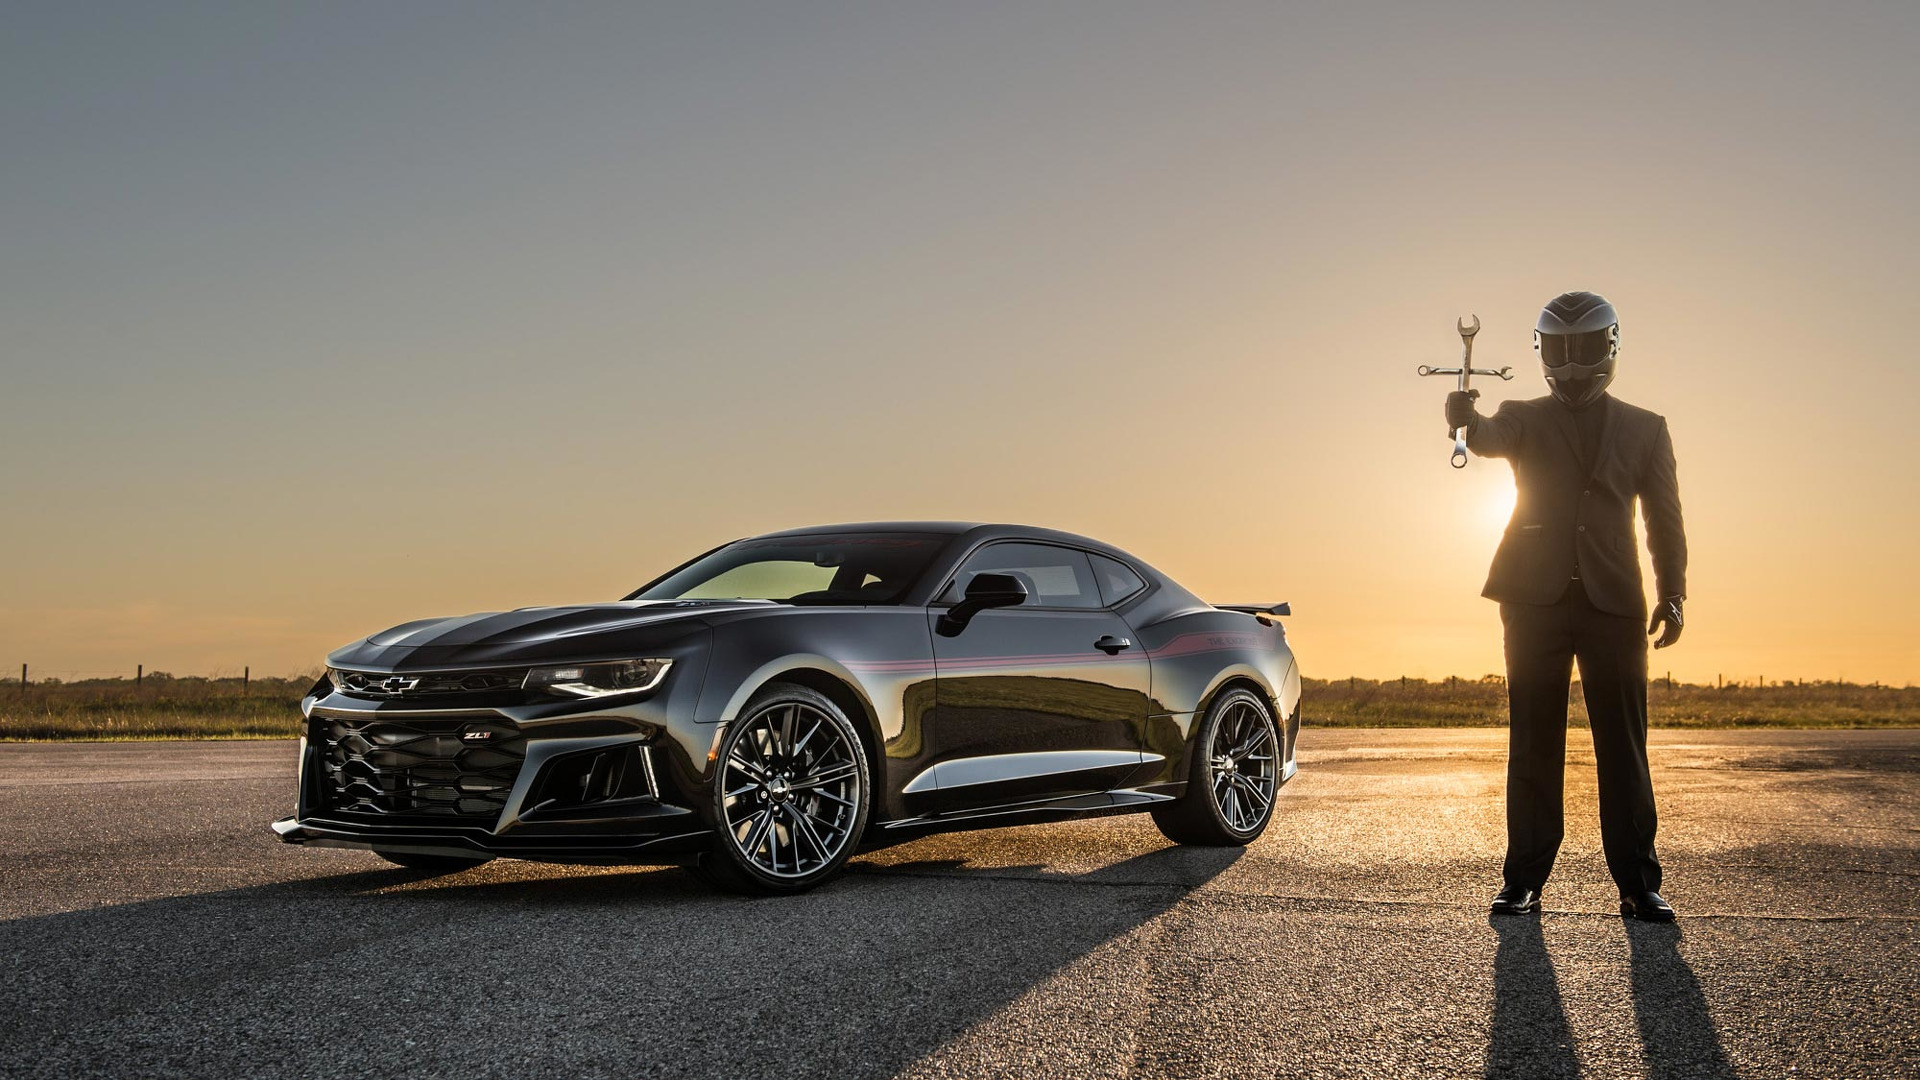 Introducing The Exorcist 1000 Hp Zl1 Camaro